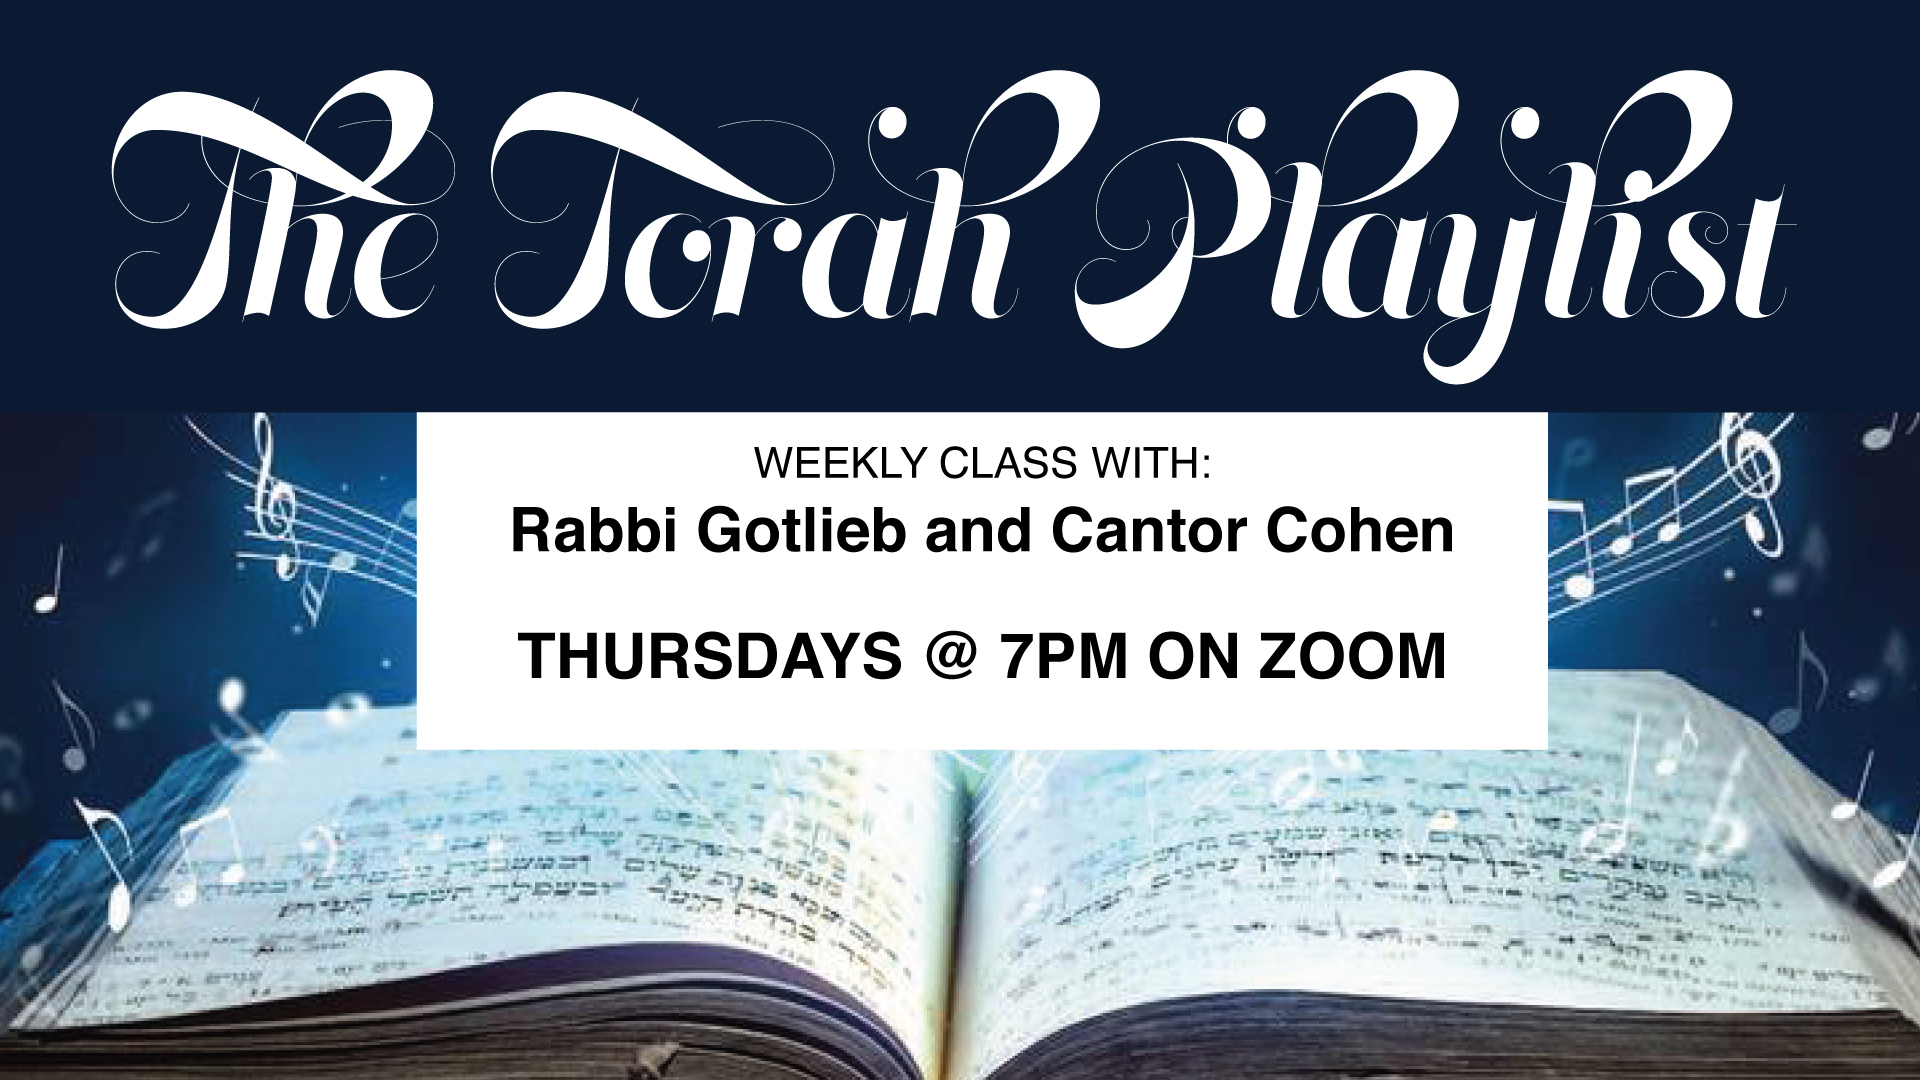 The Torah Playlist